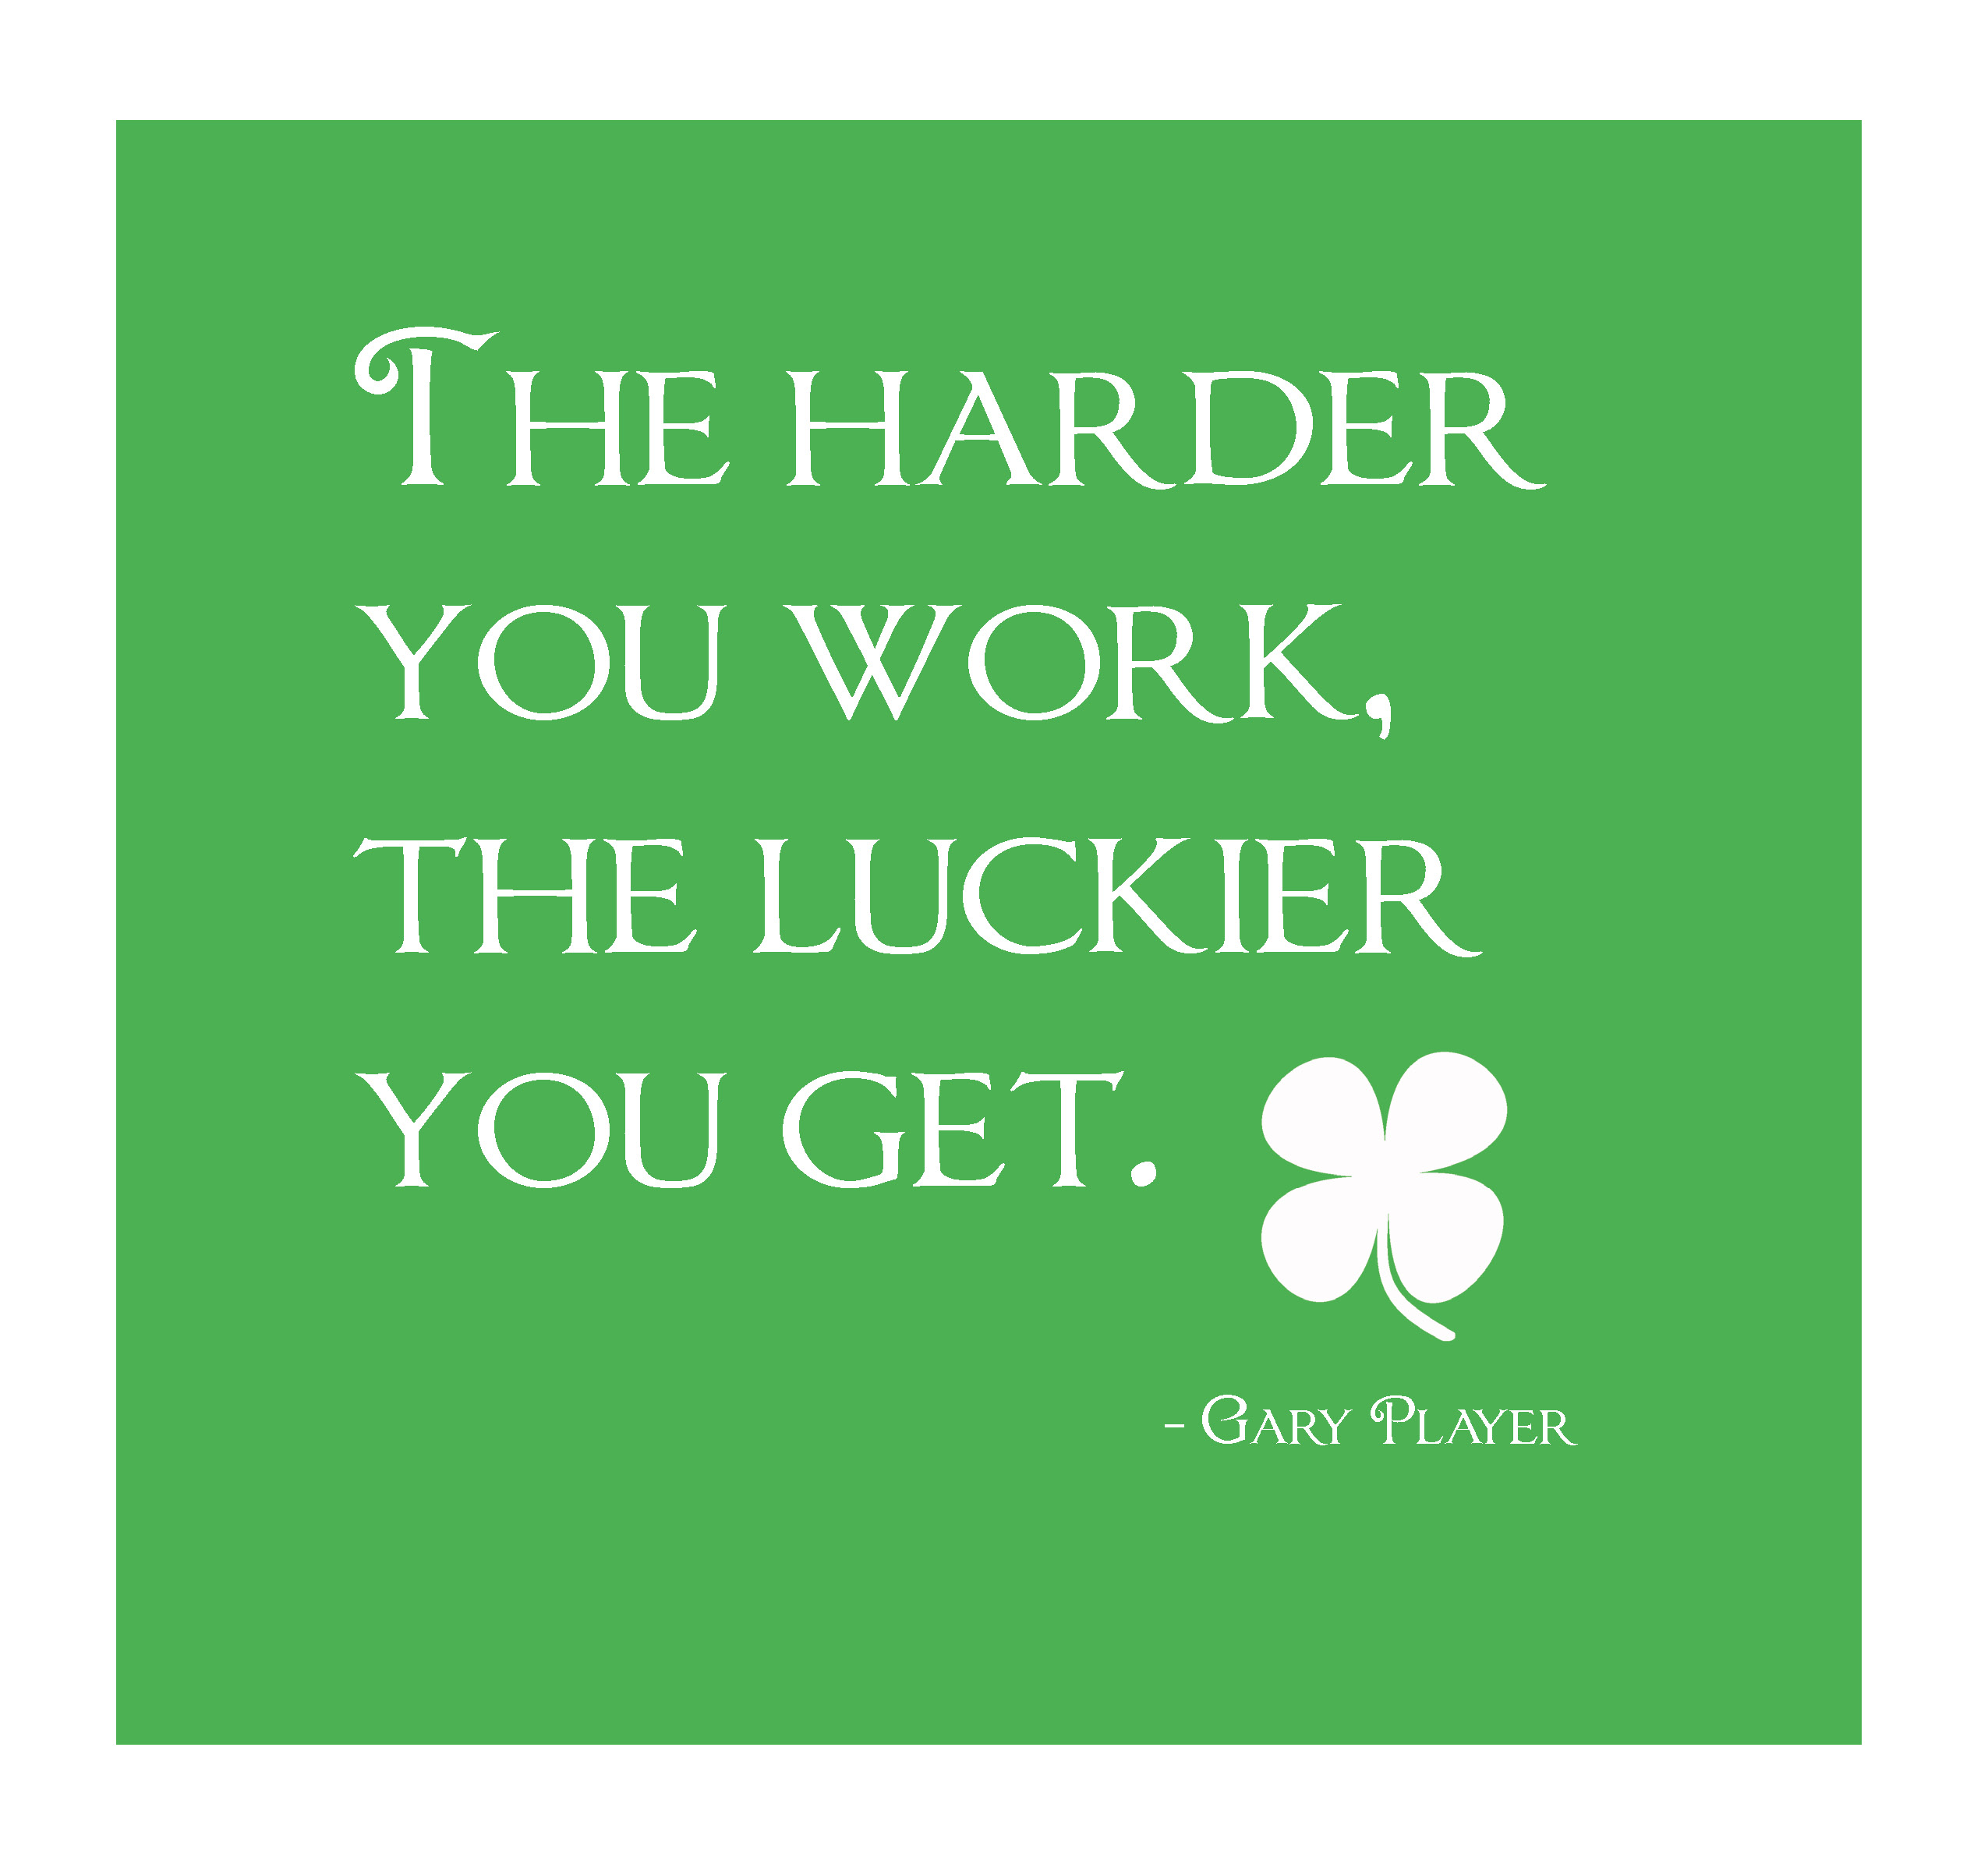 quotes about hard work and recognition 18 quotes quotes about hard work and recognition